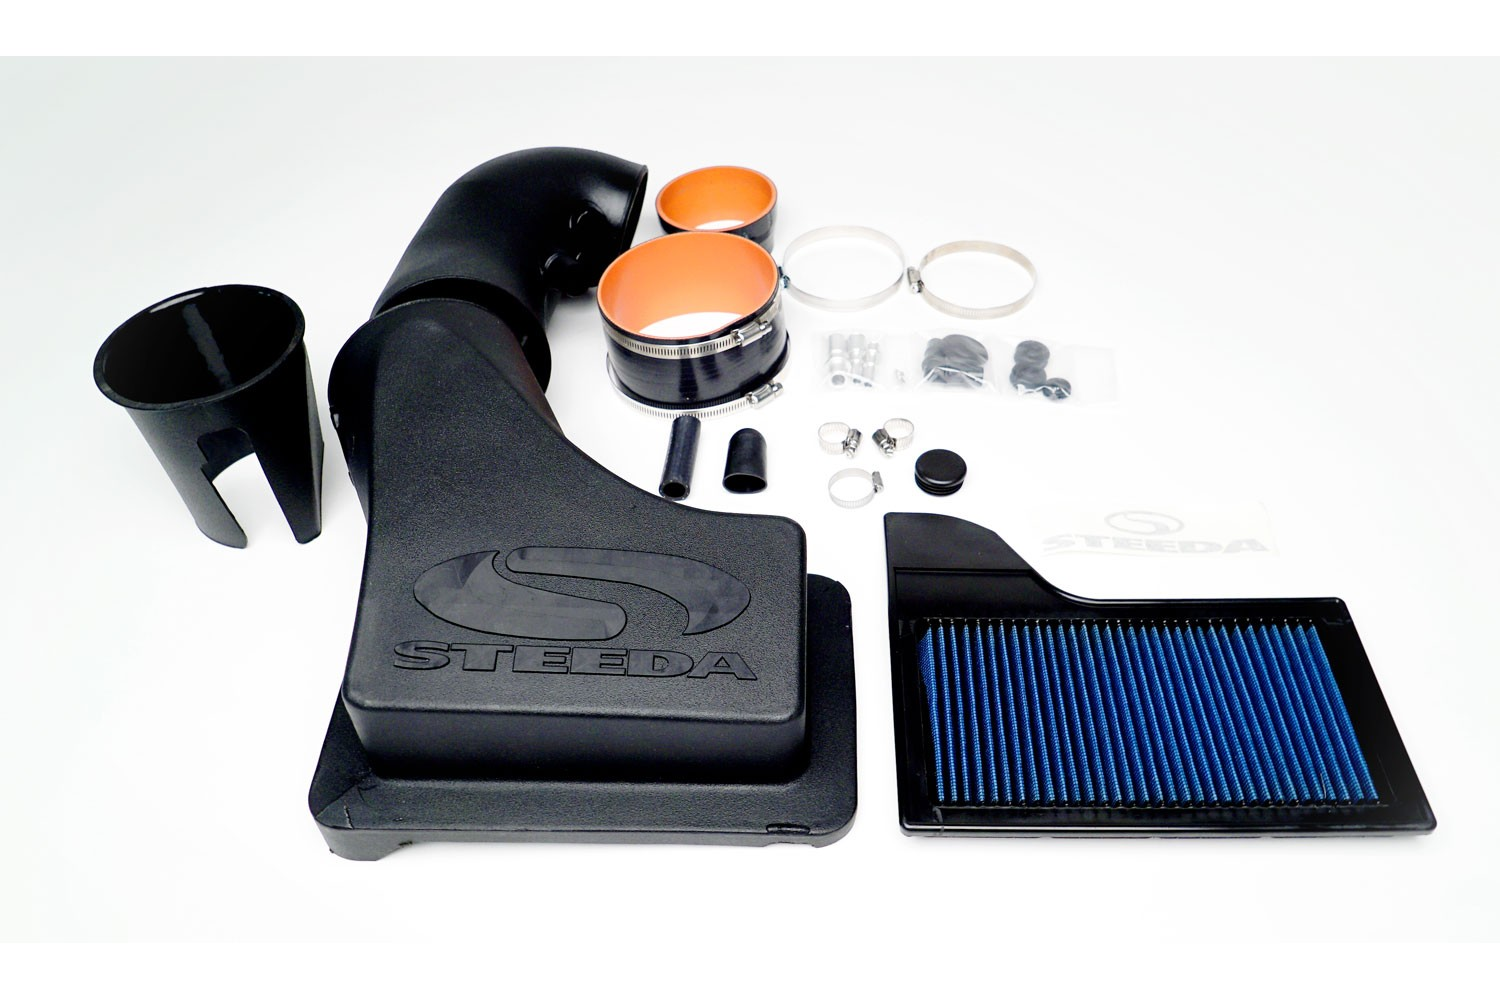 2015-2018 Mustang GT Steeda S550 ProFlow Close Cold Air Intake